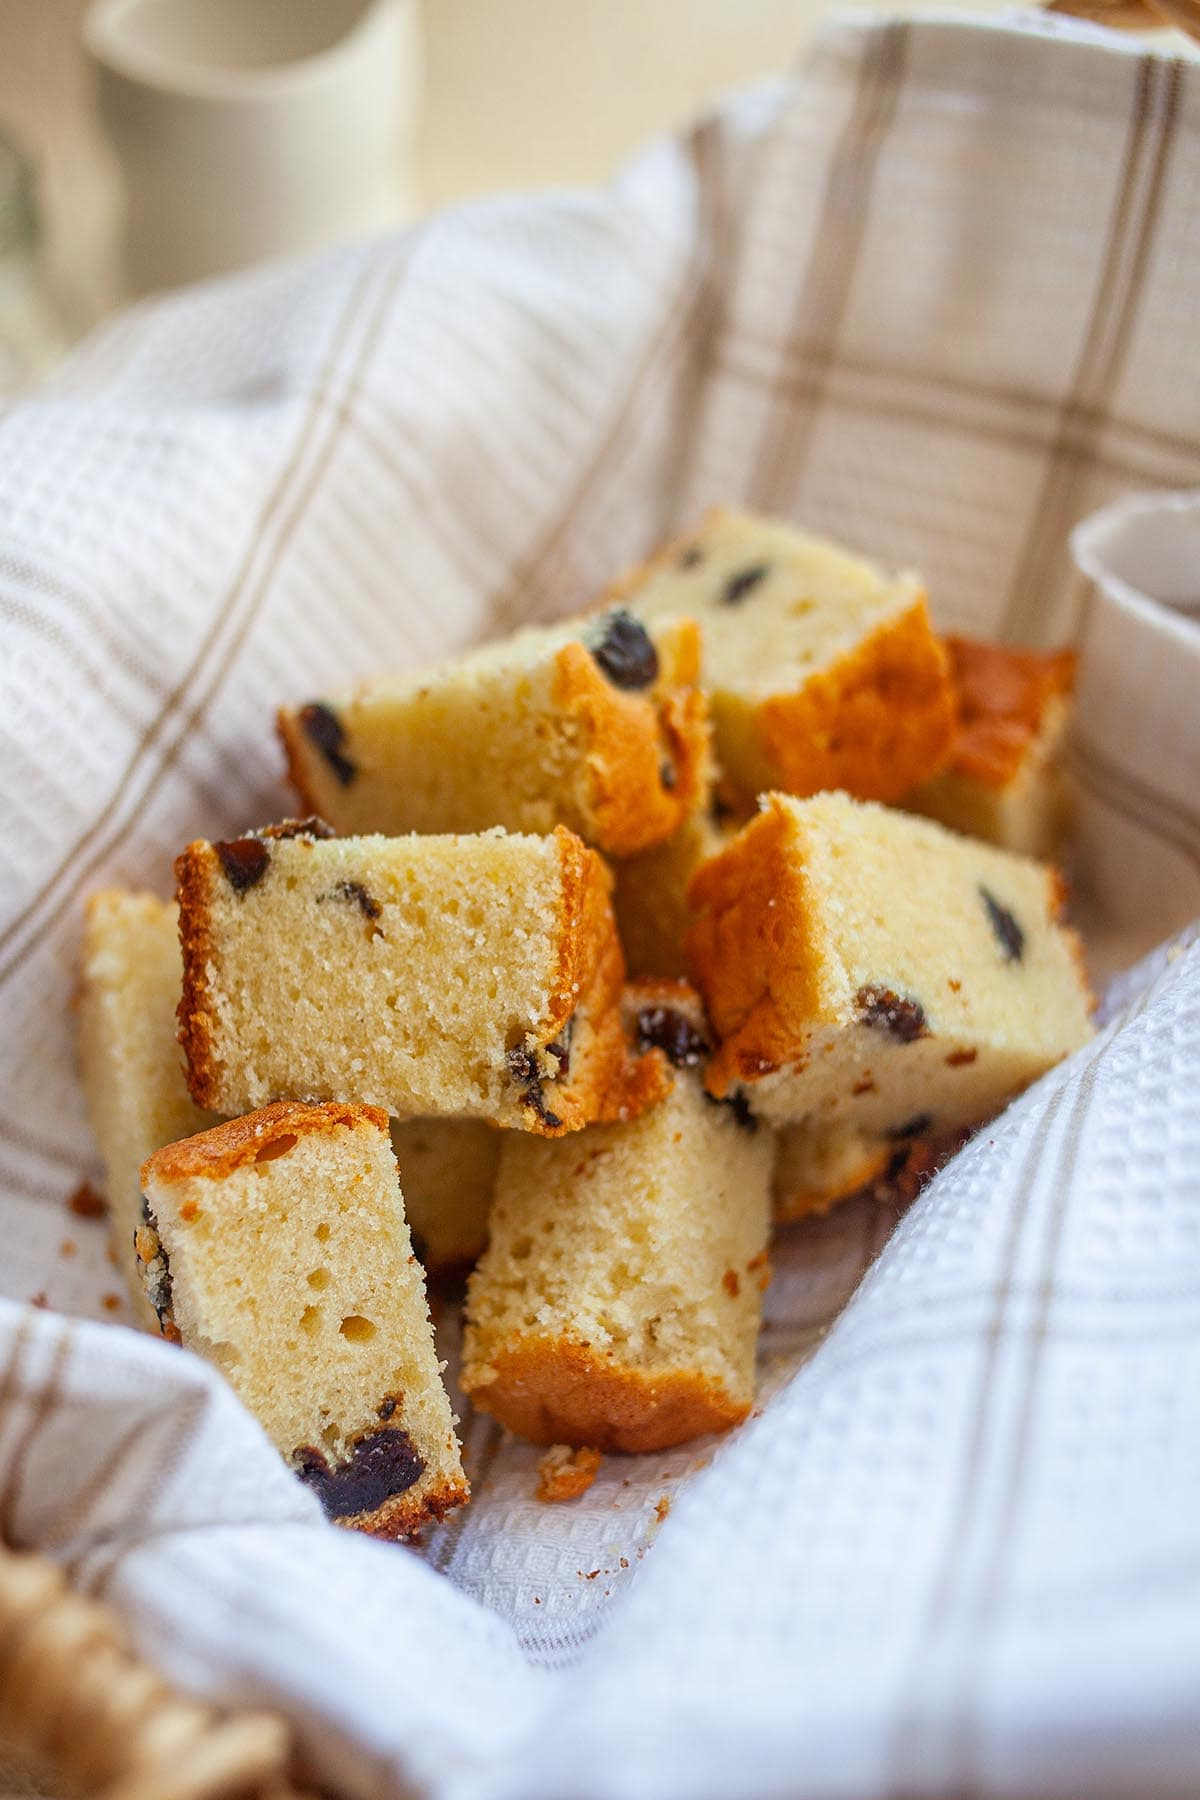 Rich, moist, sweet, and super buttery butter cake with splashes of brandy plus dried prunes.